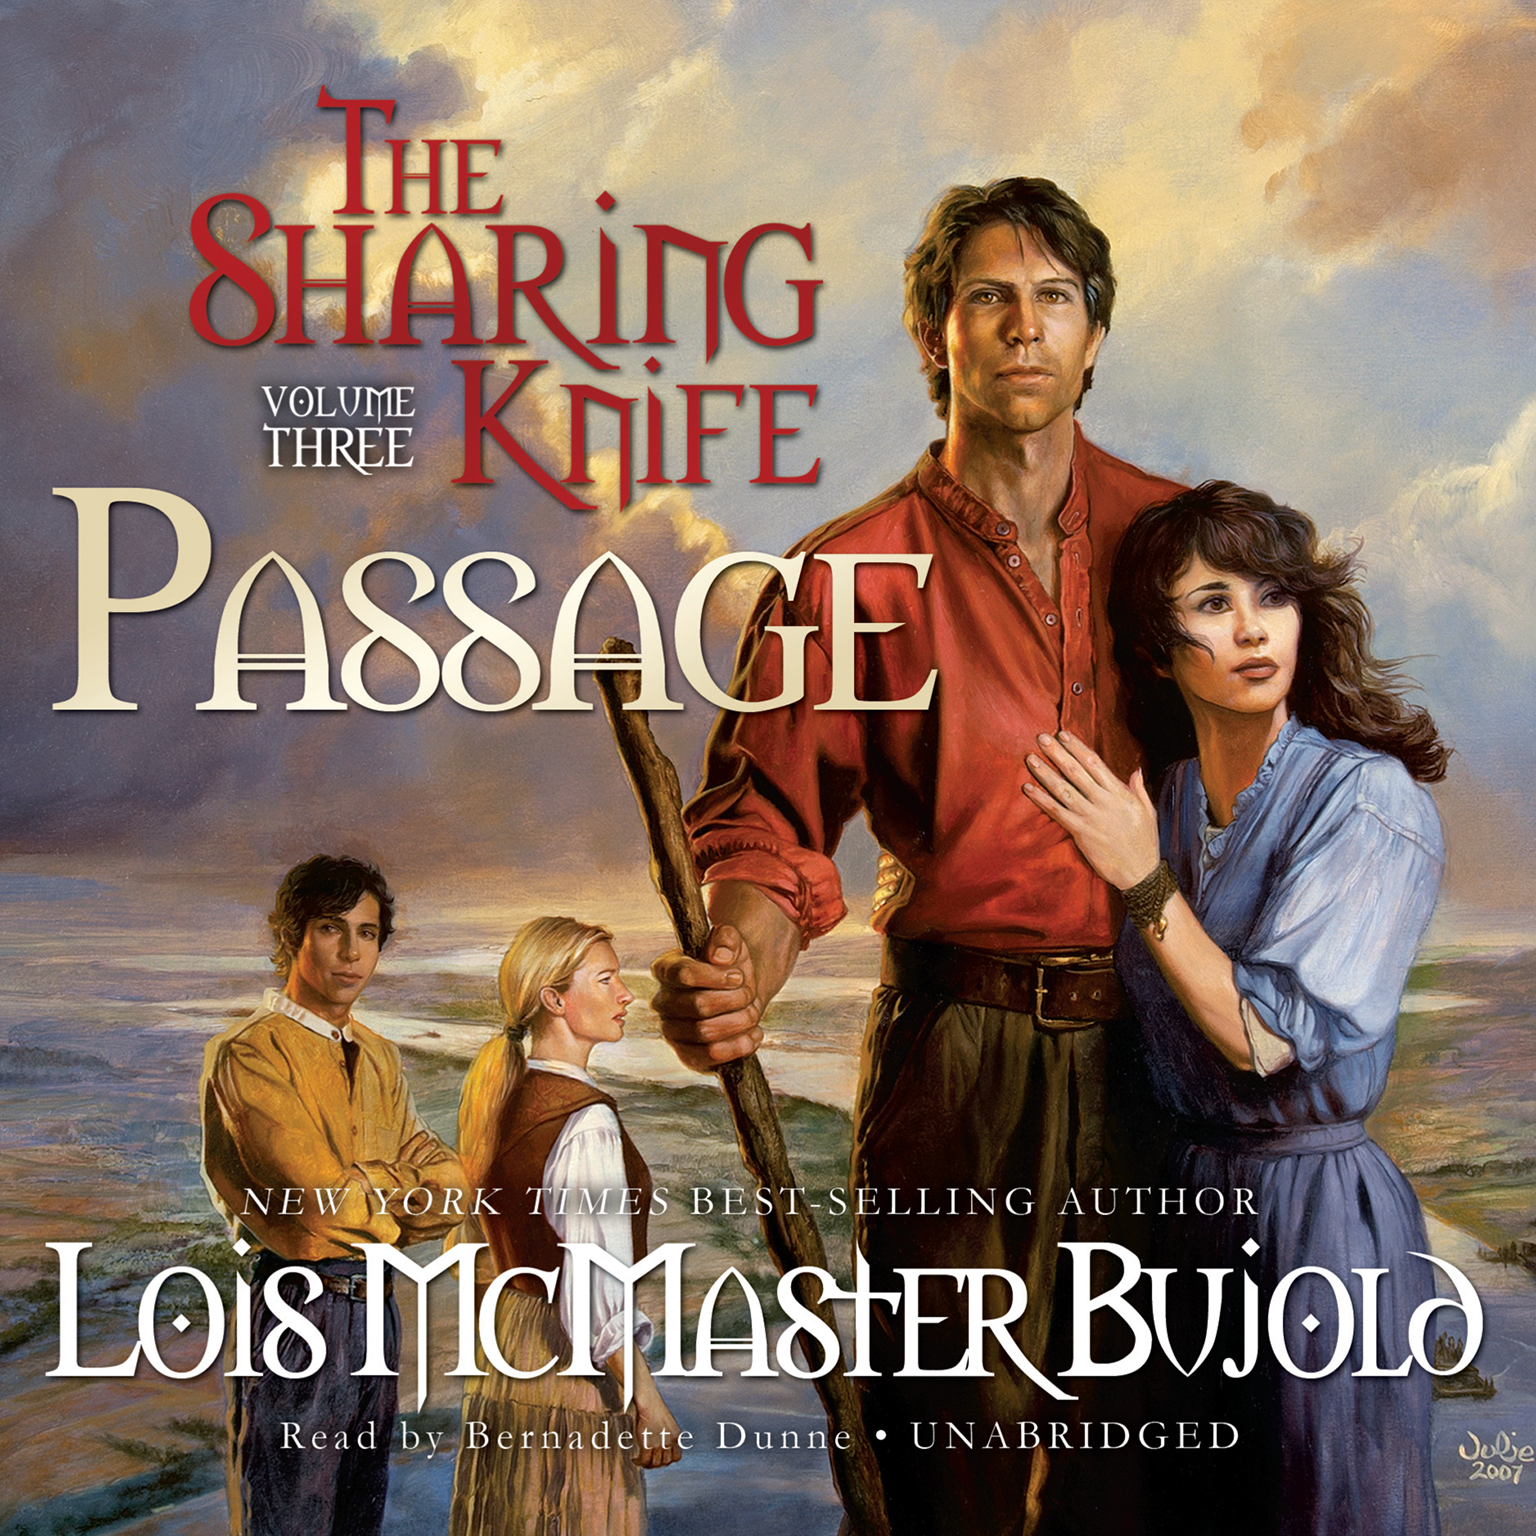 Printable The Sharing Knife, Vol. 3: Passage Audiobook Cover Art